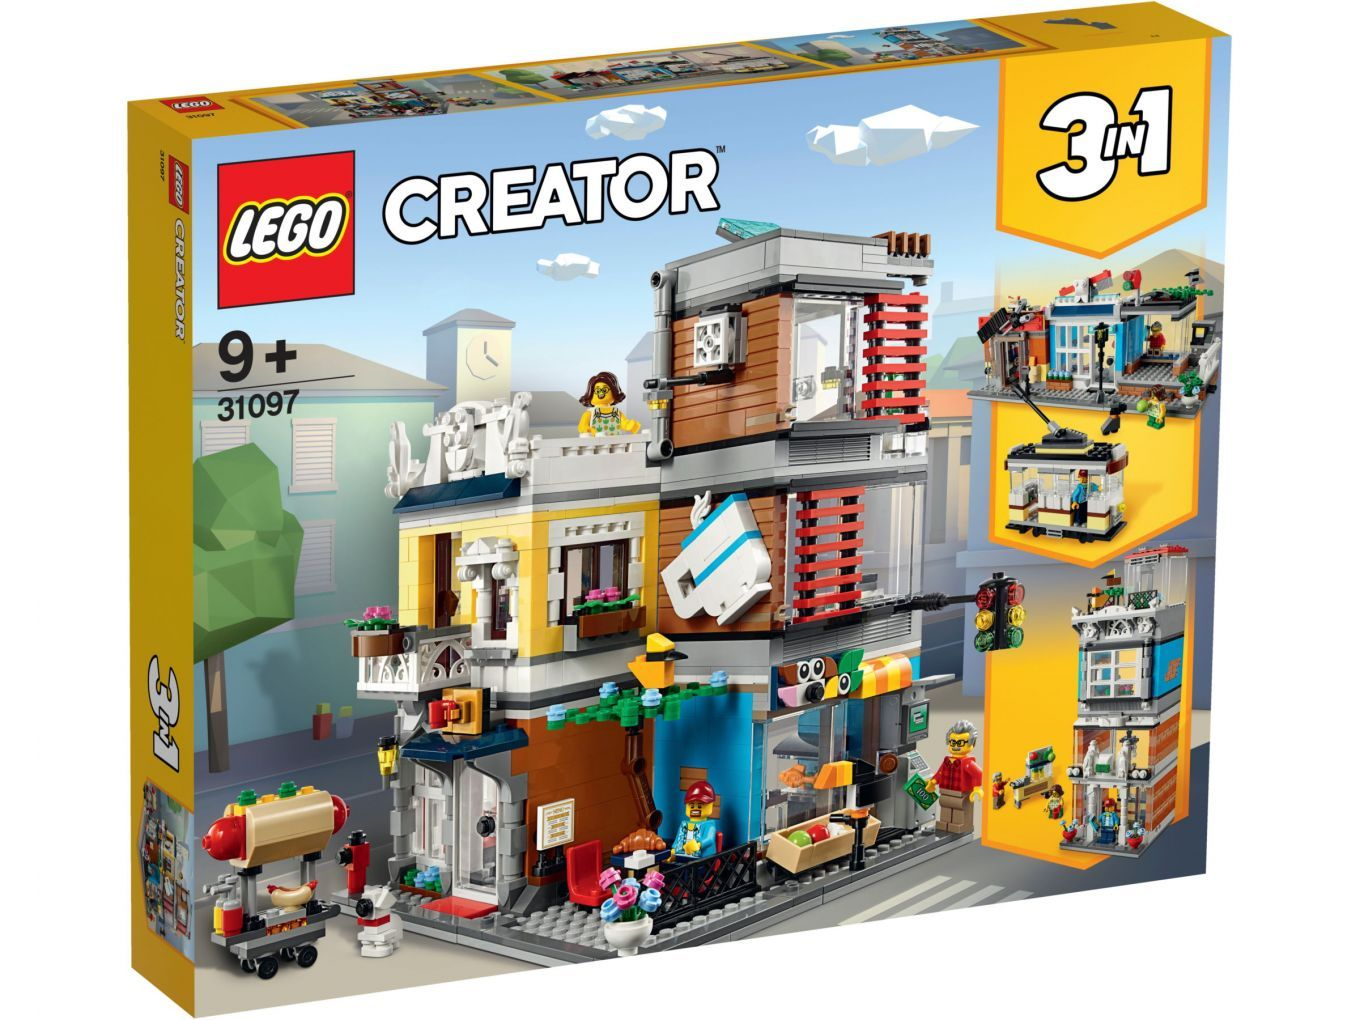 Lego Creator Summer 2019 Wave Features A New Fairground Ride Townhouse Helicopter And More News Lego Creator Lego Cafe Signage